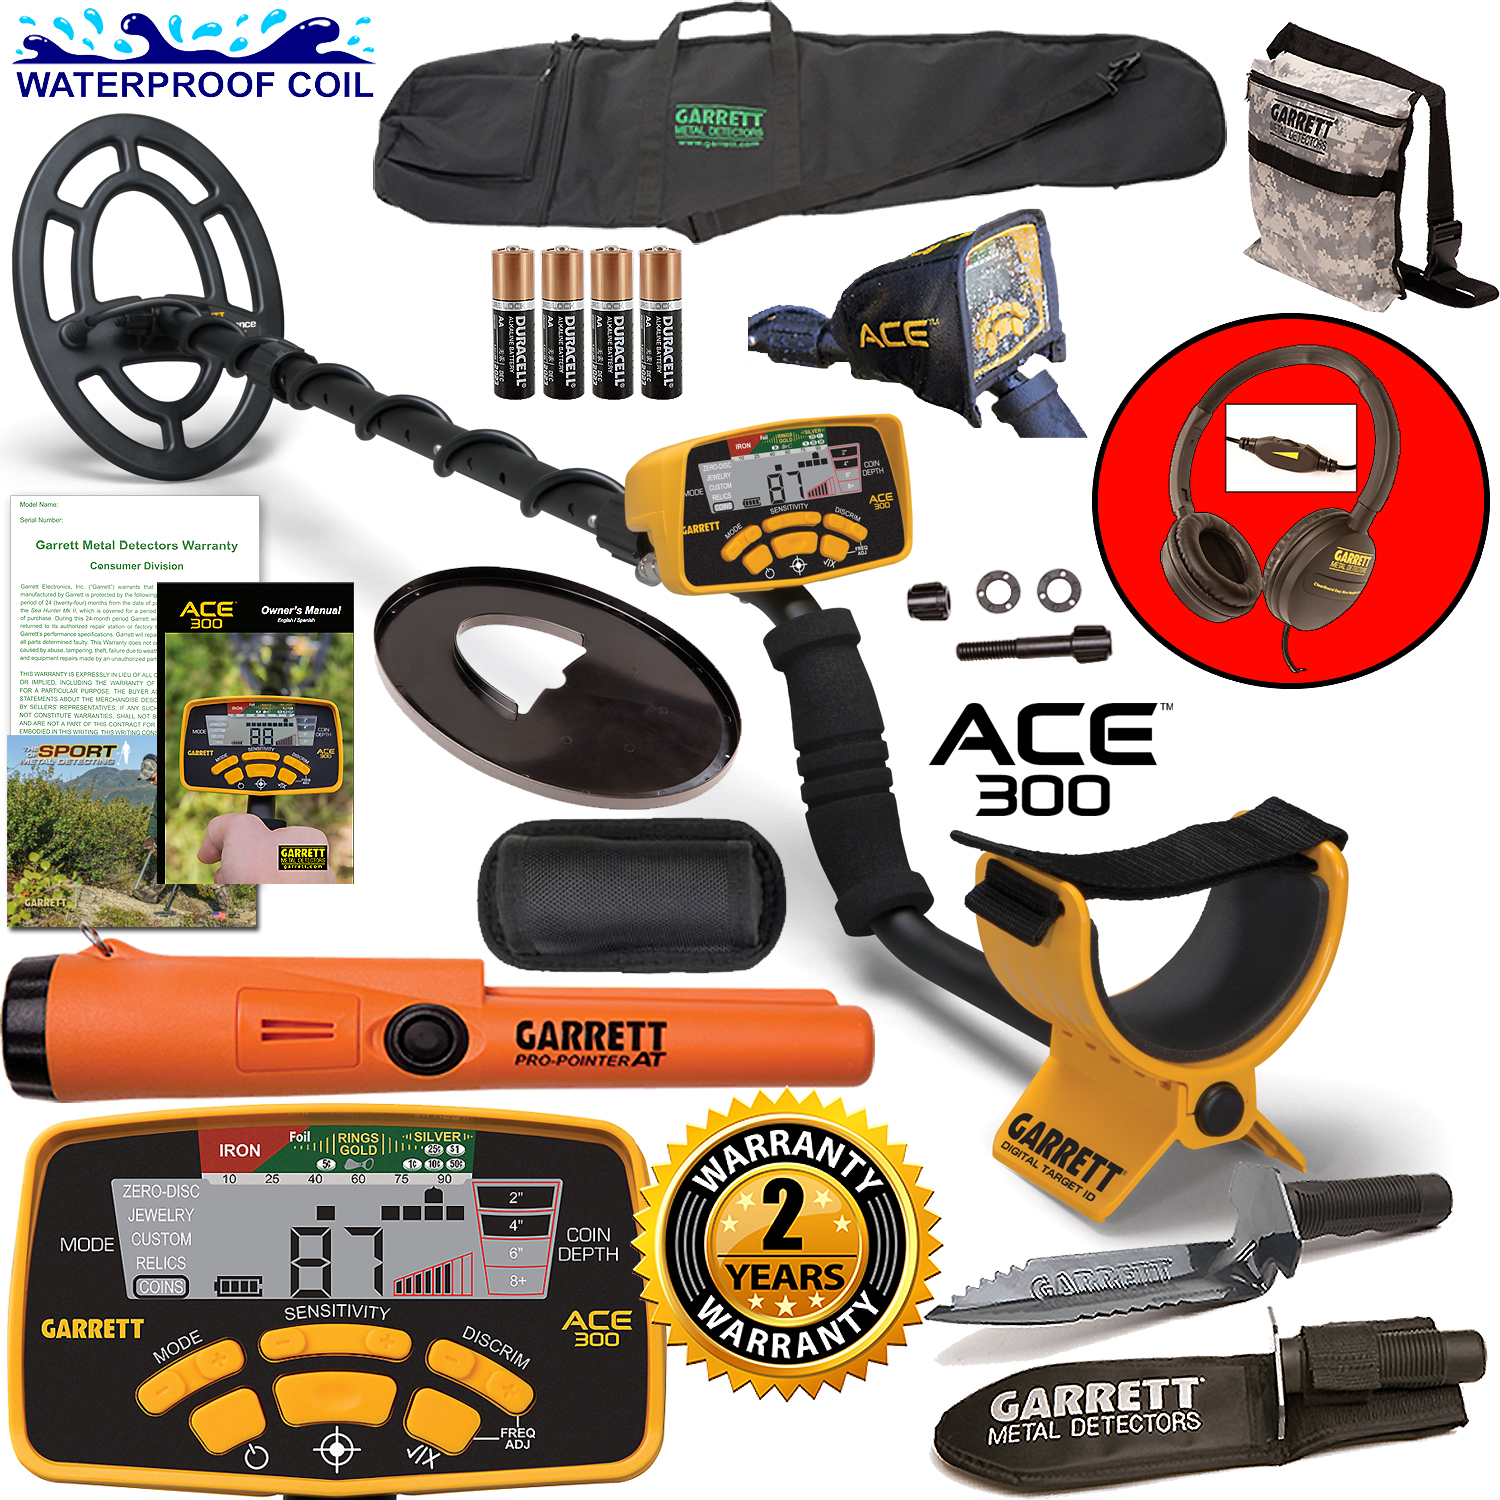 Garrett ACE 300 Metal Detector with Waterproof Coil ProPointer AT and More by